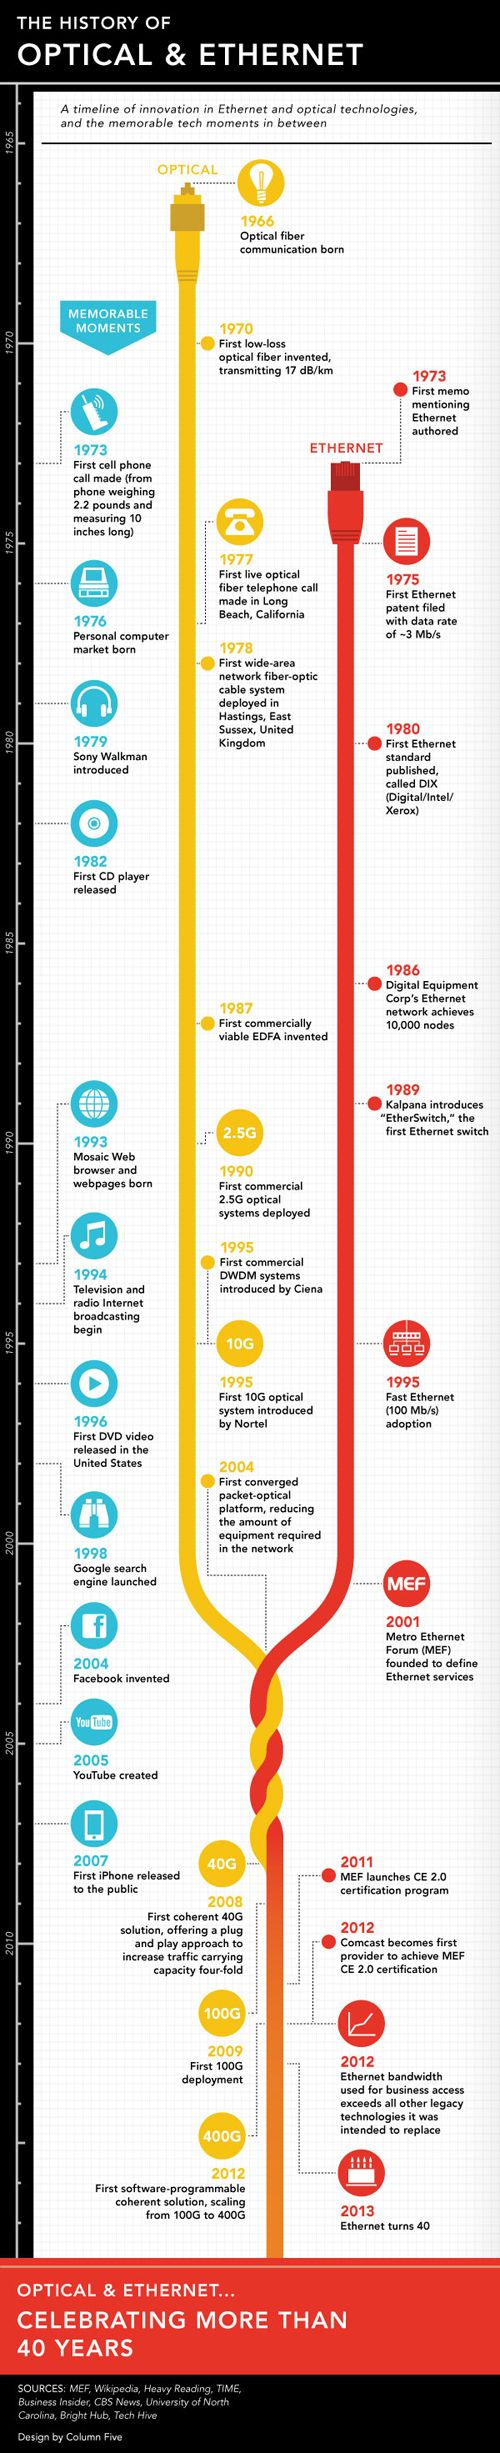 Ciena - Infographic: The history of optical and Ethernet - Overview | 40 Years of Ethernet | For cat 5 & cat 6 cabling throughout the West Midlands, Birmingham, Halesowen & the UK pop over to https://www.midlandnetworks.co.uk/it-cabling-menu/cat5-cat6-cabling.html